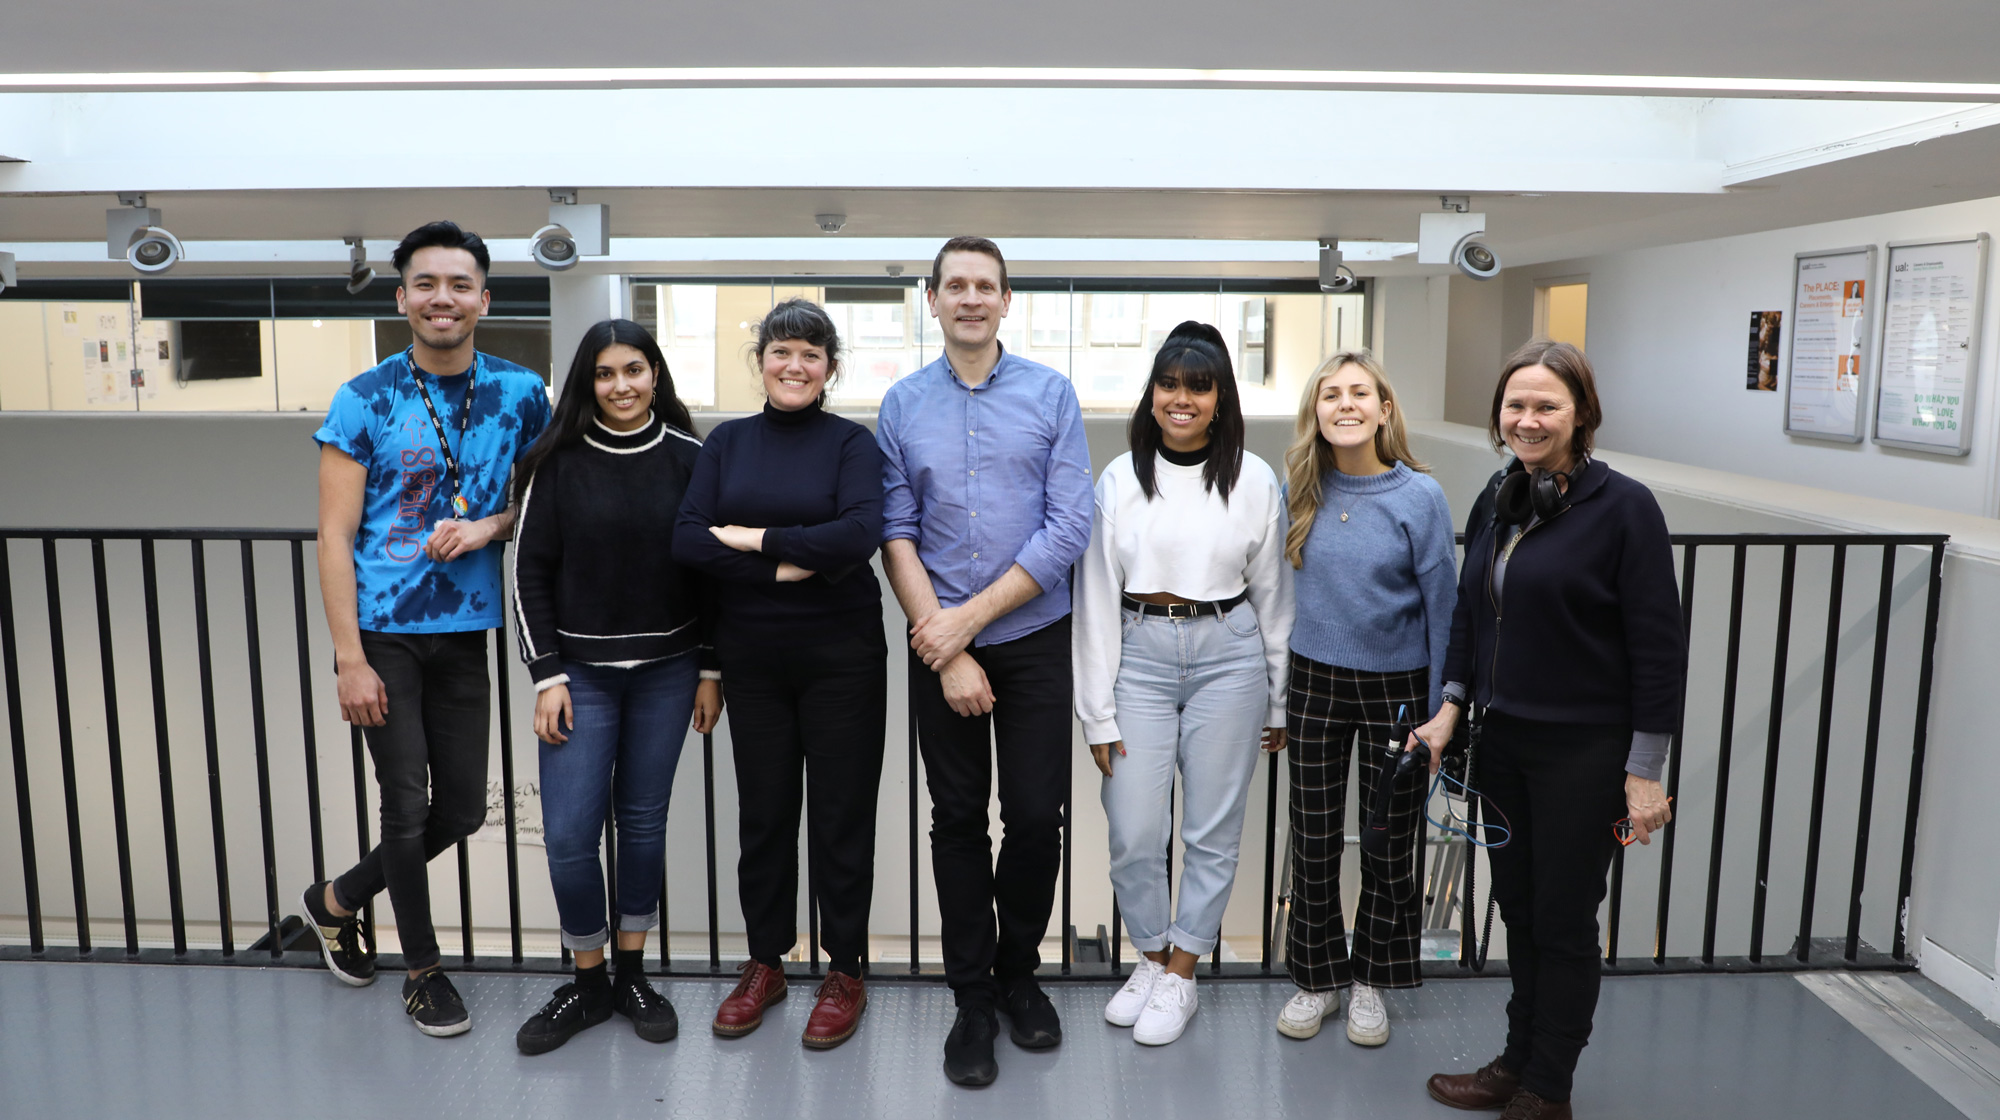 Posed group photo of Bruce Daisley with BBC producer and LCC students smiling at camera